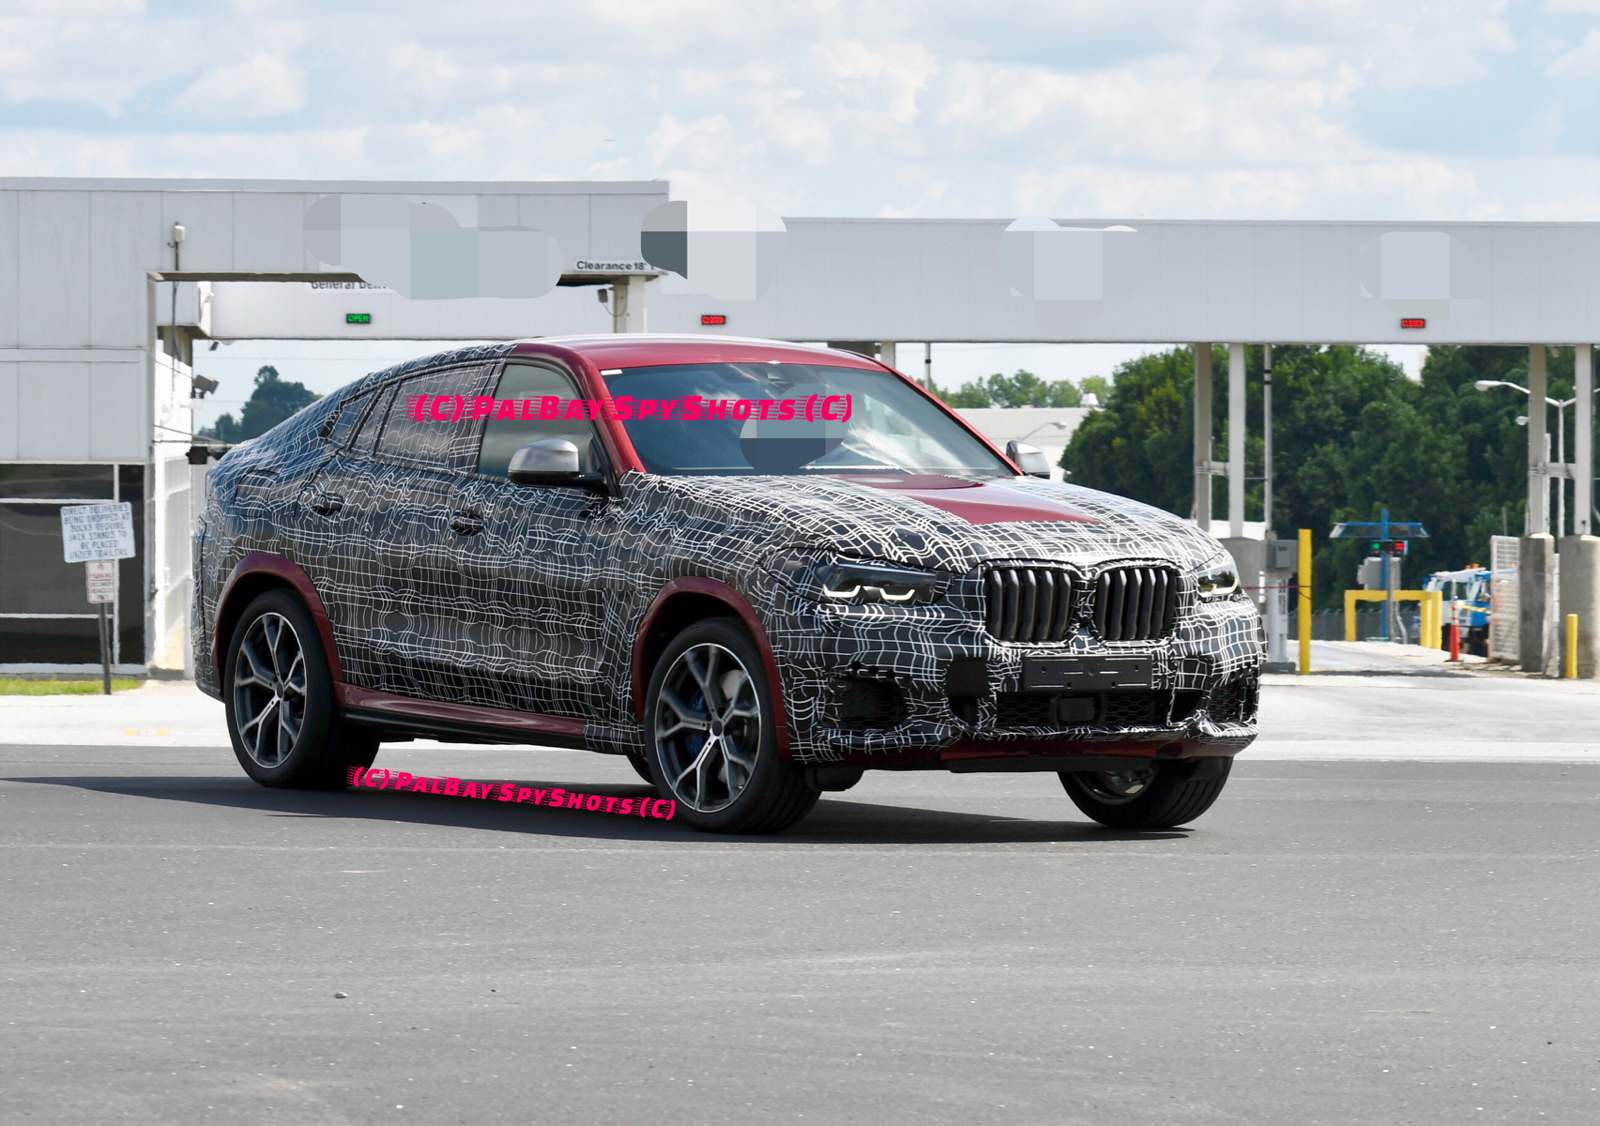 2019 - [BMW] X6 III (G06) - Page 3 Attachment